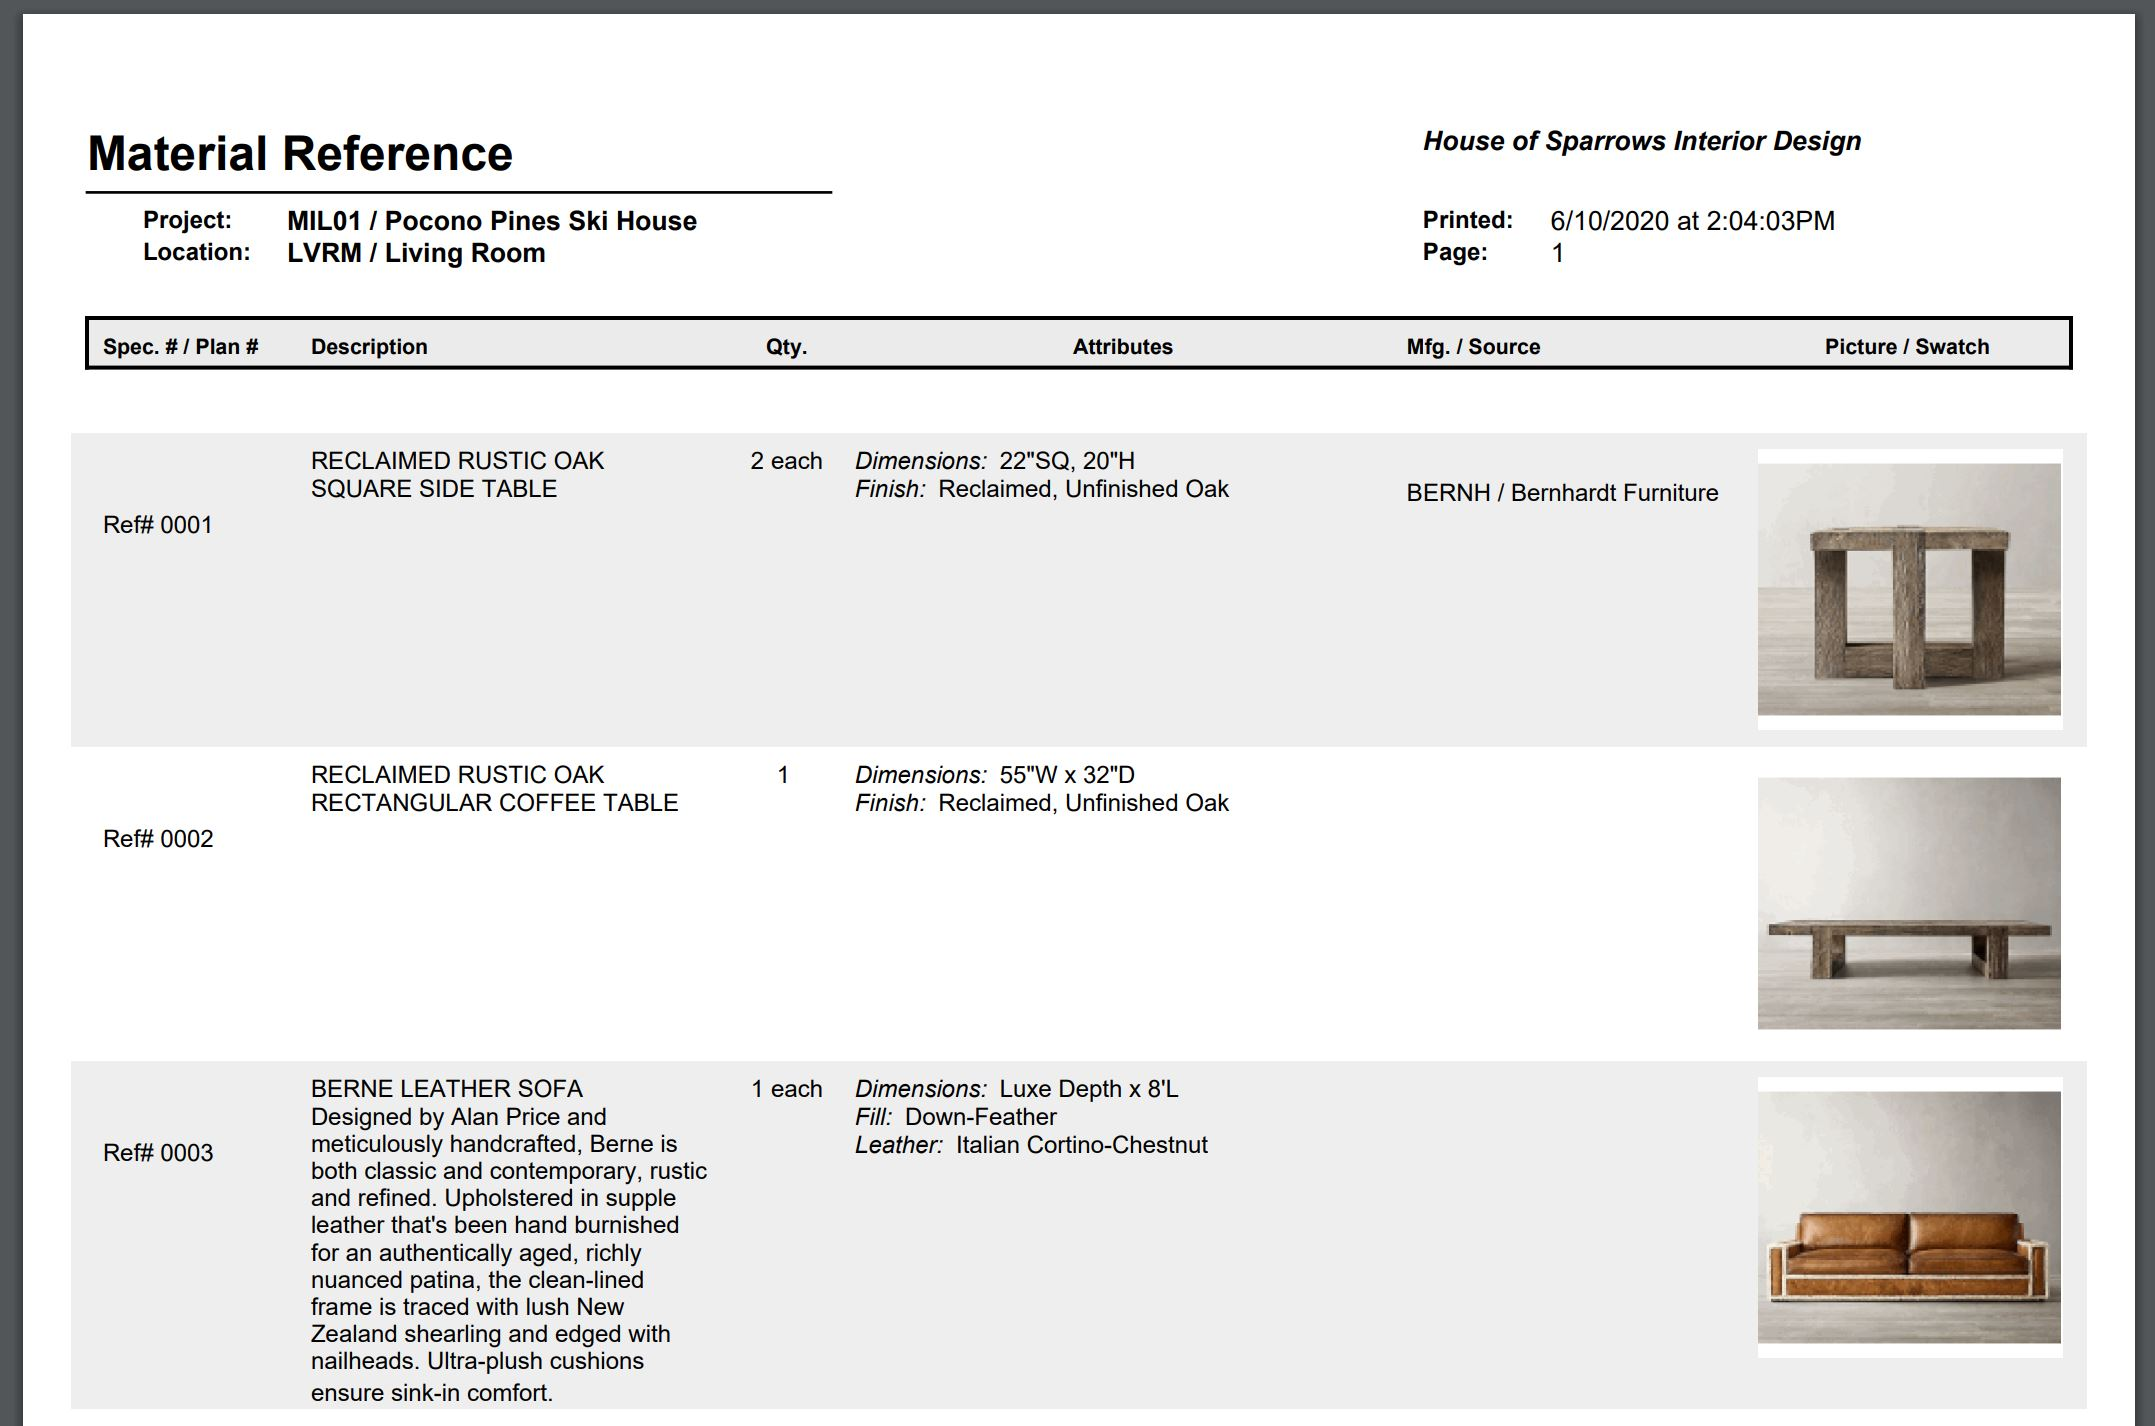 Material Reference Report Screenshot with description